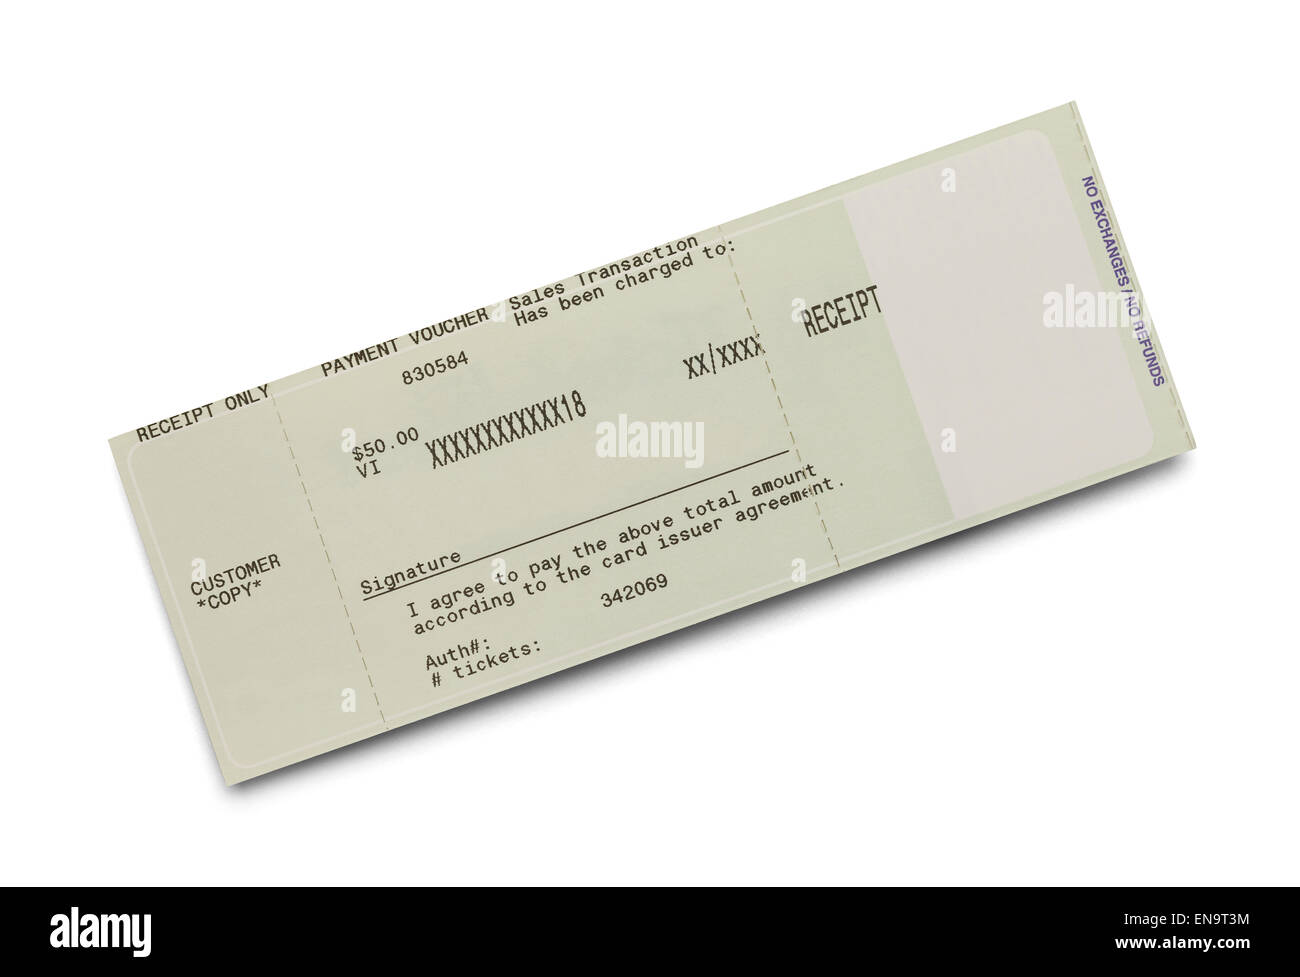 Credit Card Ticket Receipt Isolated on White Background. - Stock Image